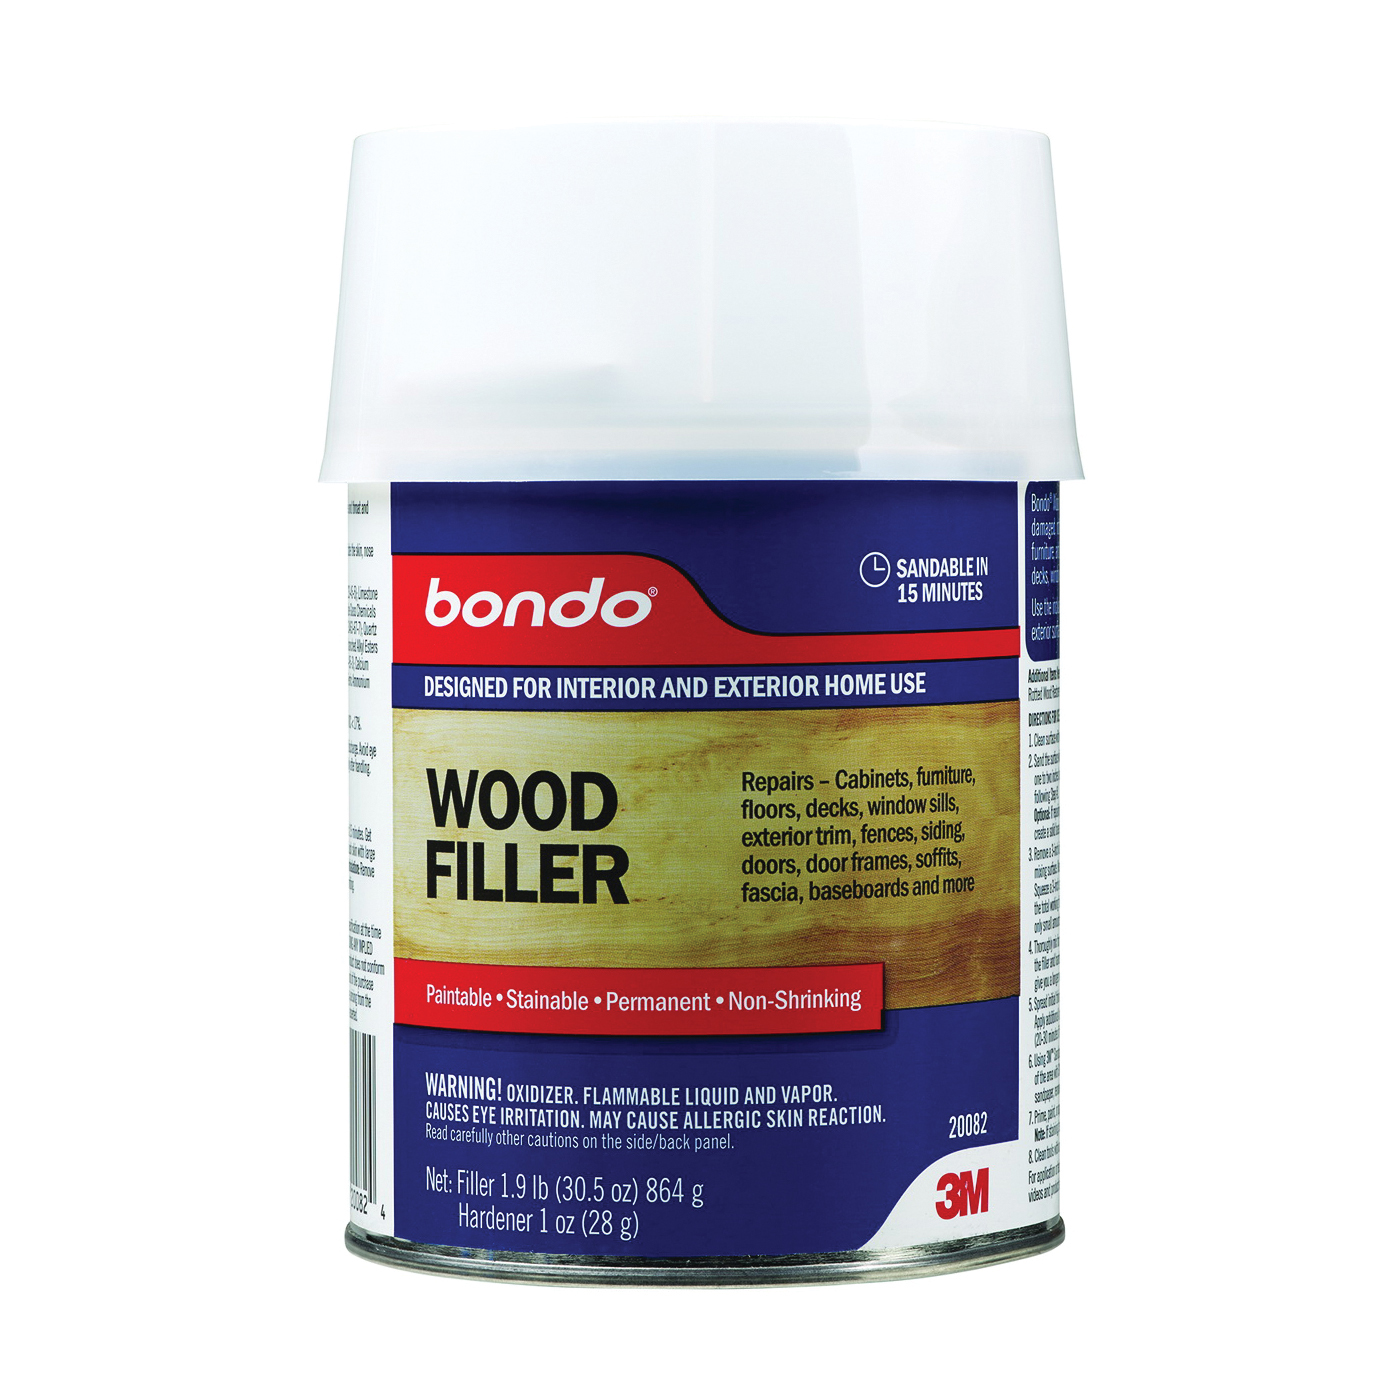 Picture of Bondo 20082 Wood Filler, Paste, Pungent Styrene, Yellow, 1 qt Package, Can